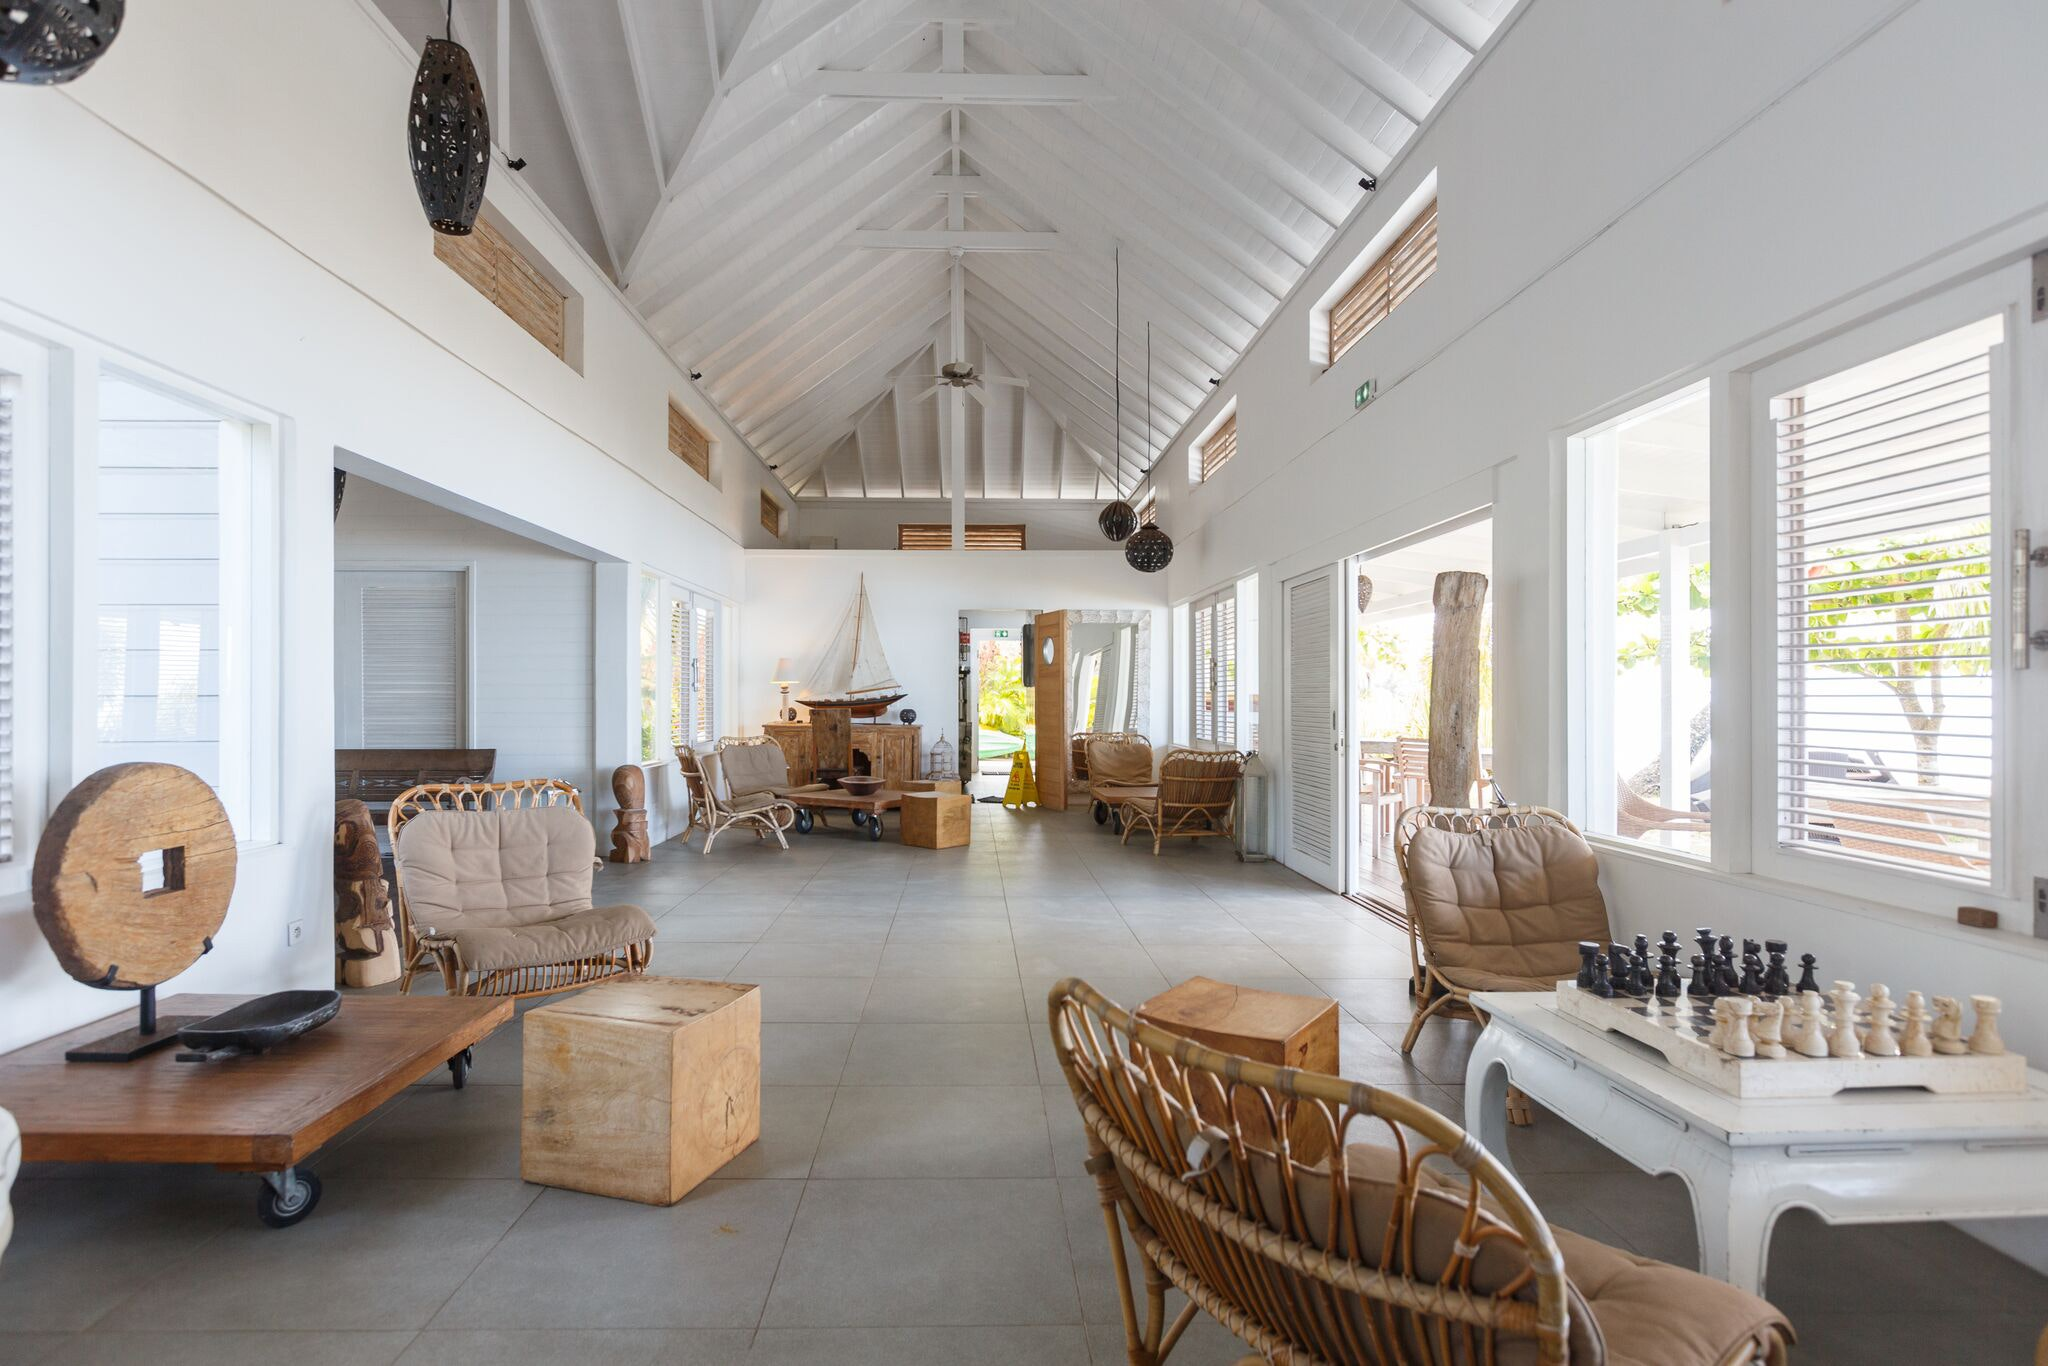 The Moorea Beach Lodge features chic, whitewashed bungalows.